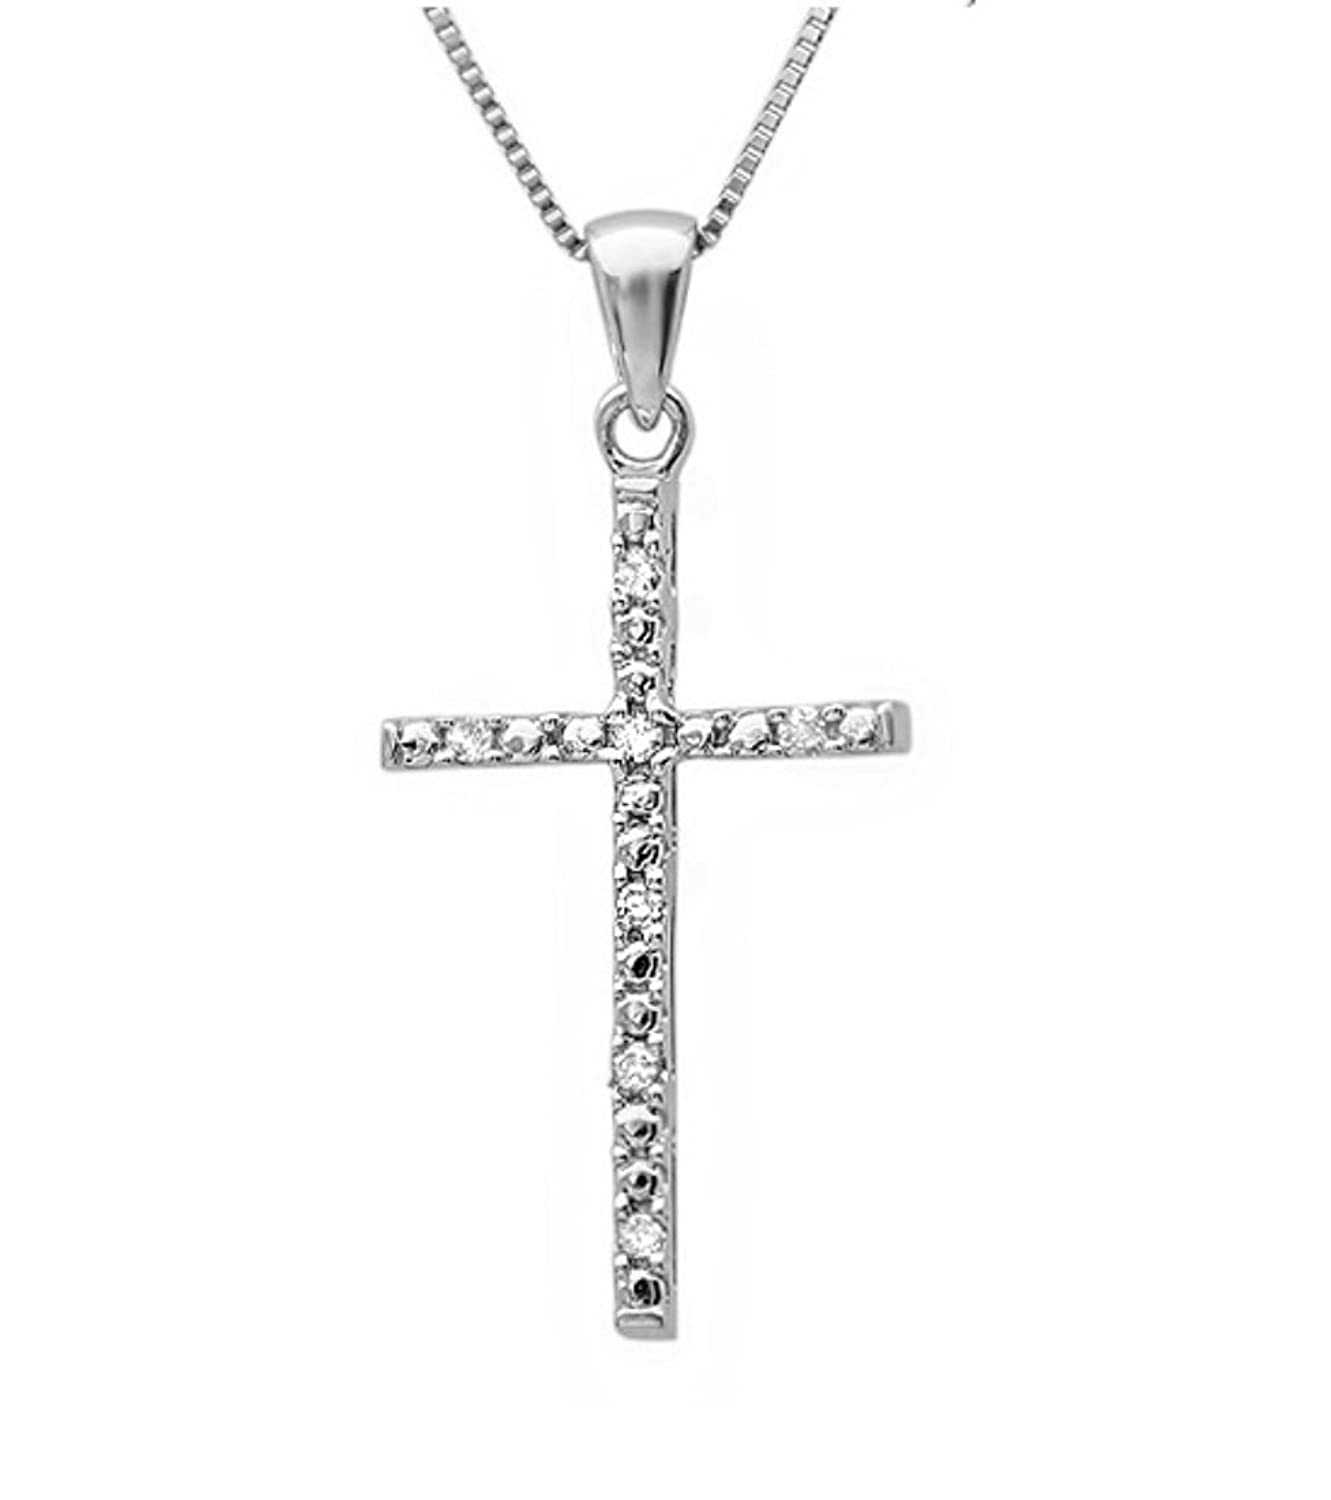 Diamond Cross Pendant-Necklace in Sterling Silver on an 18in Box Chain